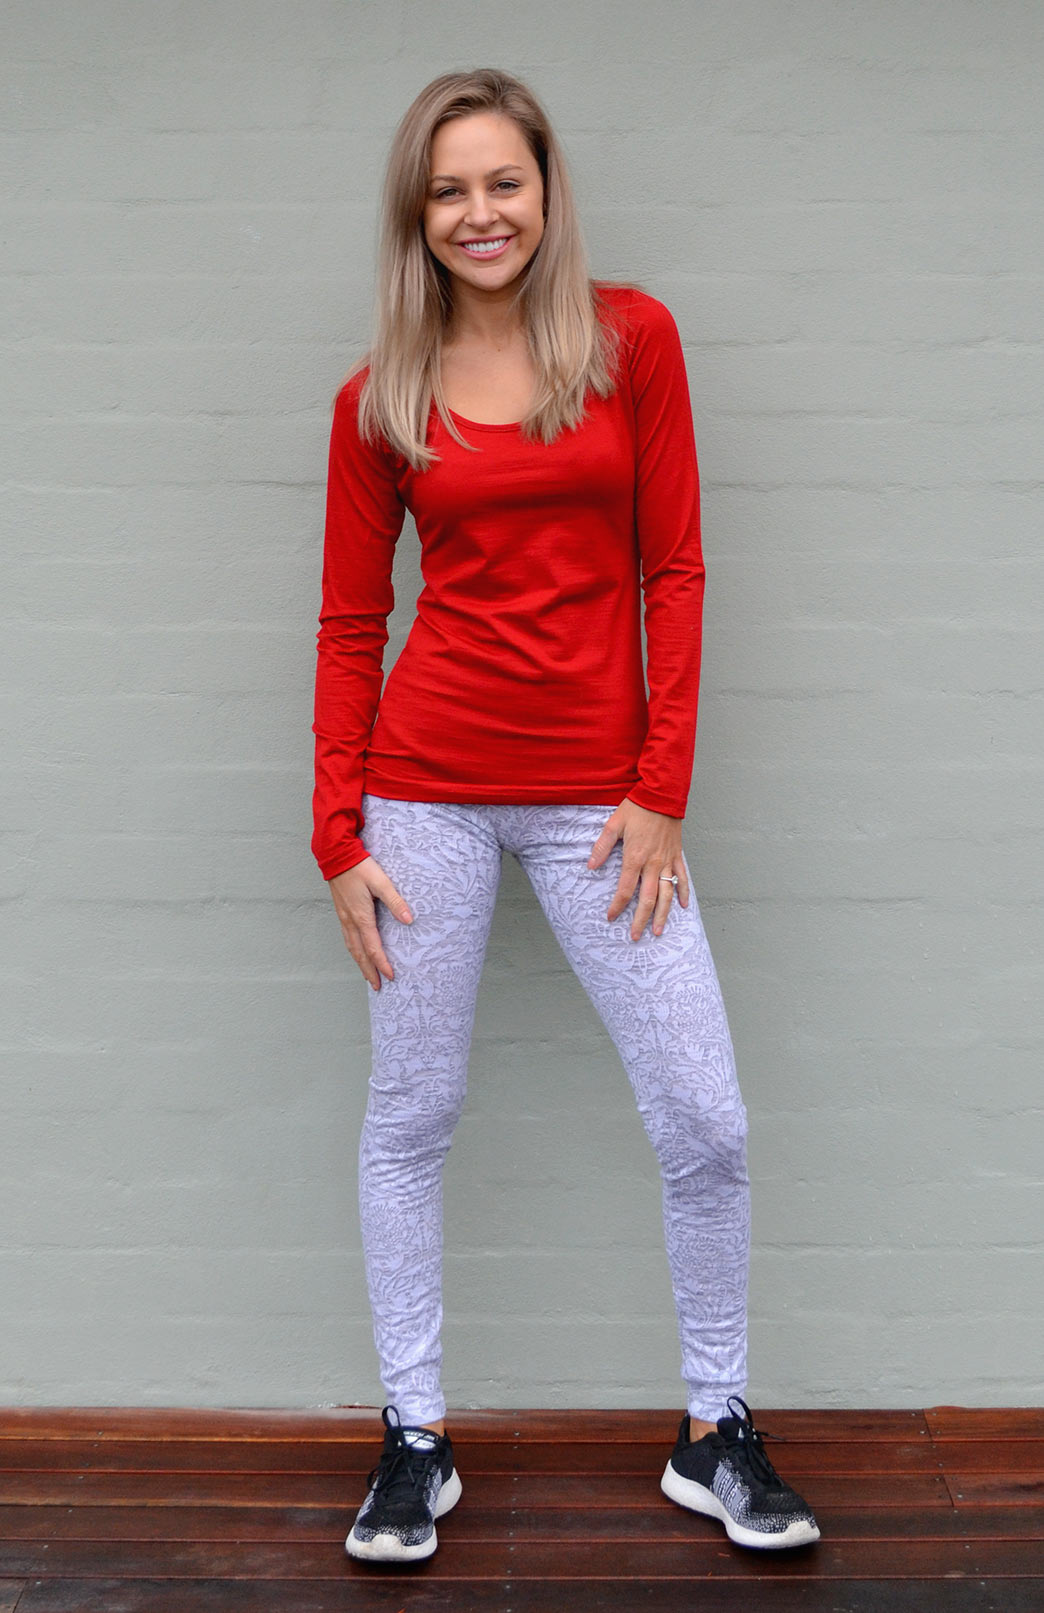 Scoop Neck Top - Plain - Women's Flame Red Pure Merino Wool Long Sleeved Layering Top with Scoop Neckline - Smitten Merino Tasmania Australia